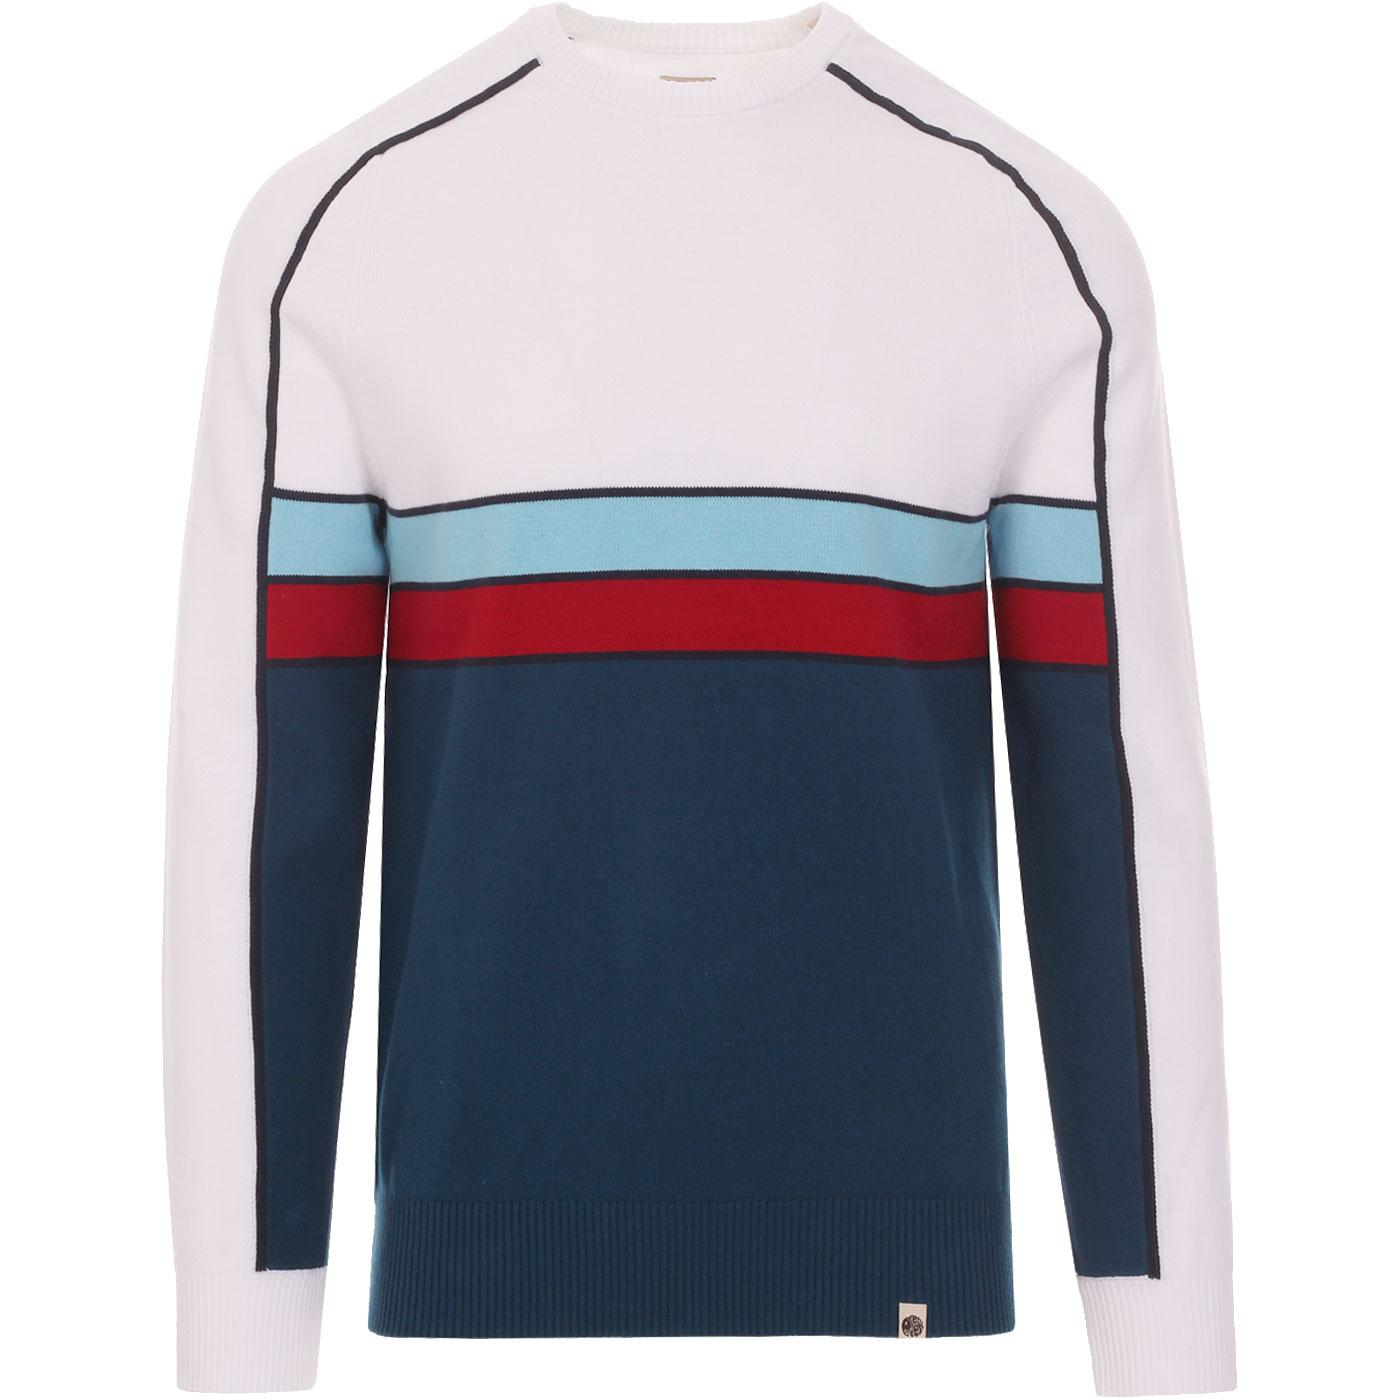 PRETTY GREEN Retro Contrast Panel Knitted Jumper W